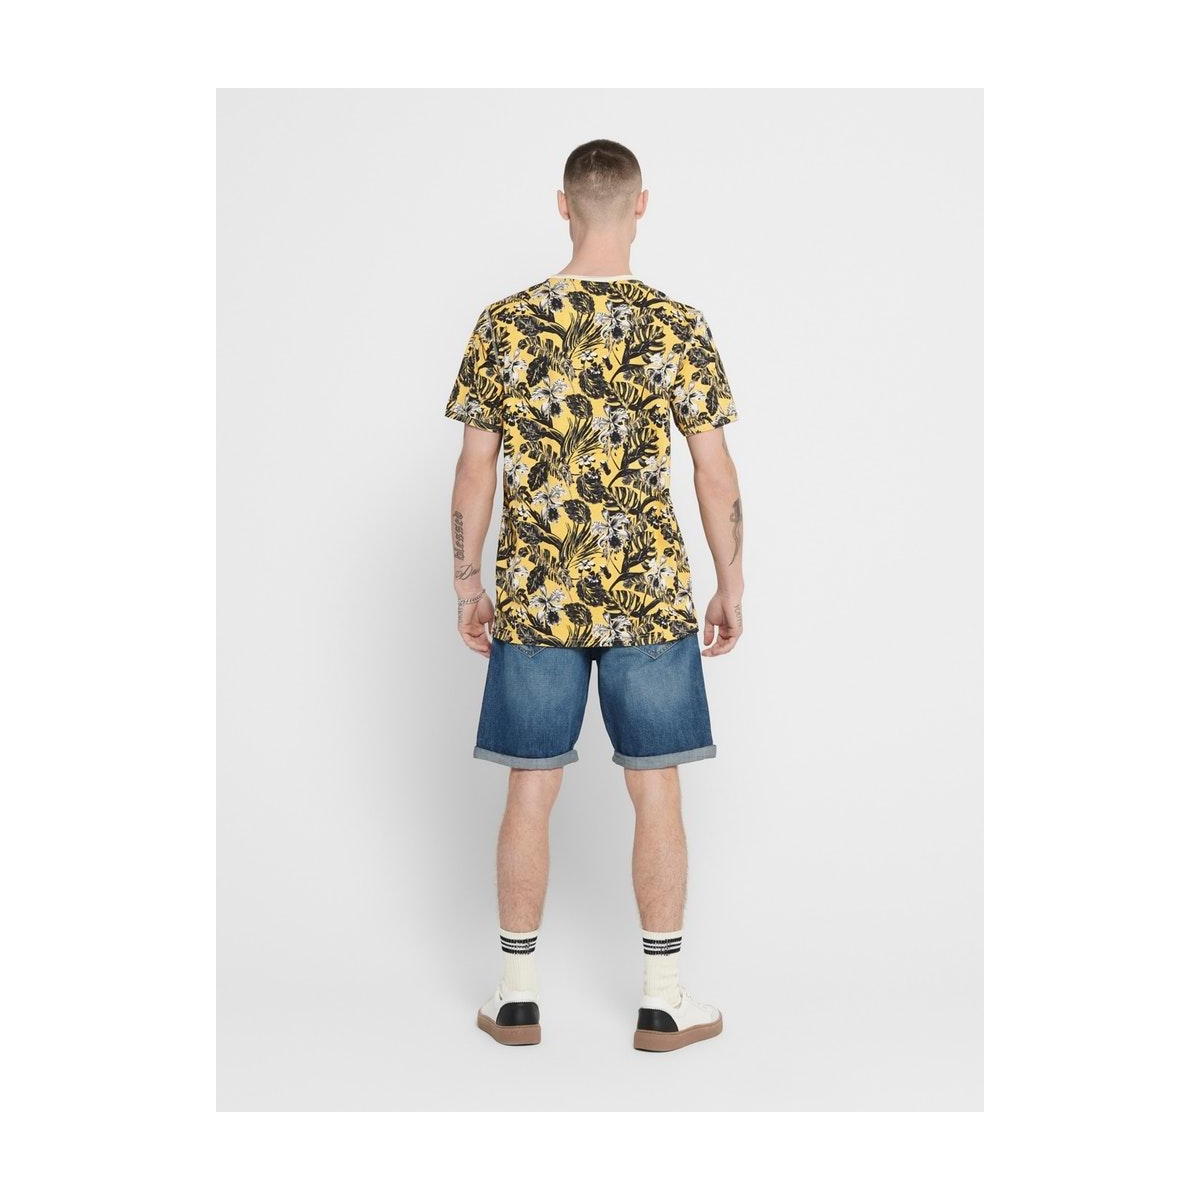 onscan life slimraw edge aop tee nf 6215 22016215 only & sons t-shirt misted yellow